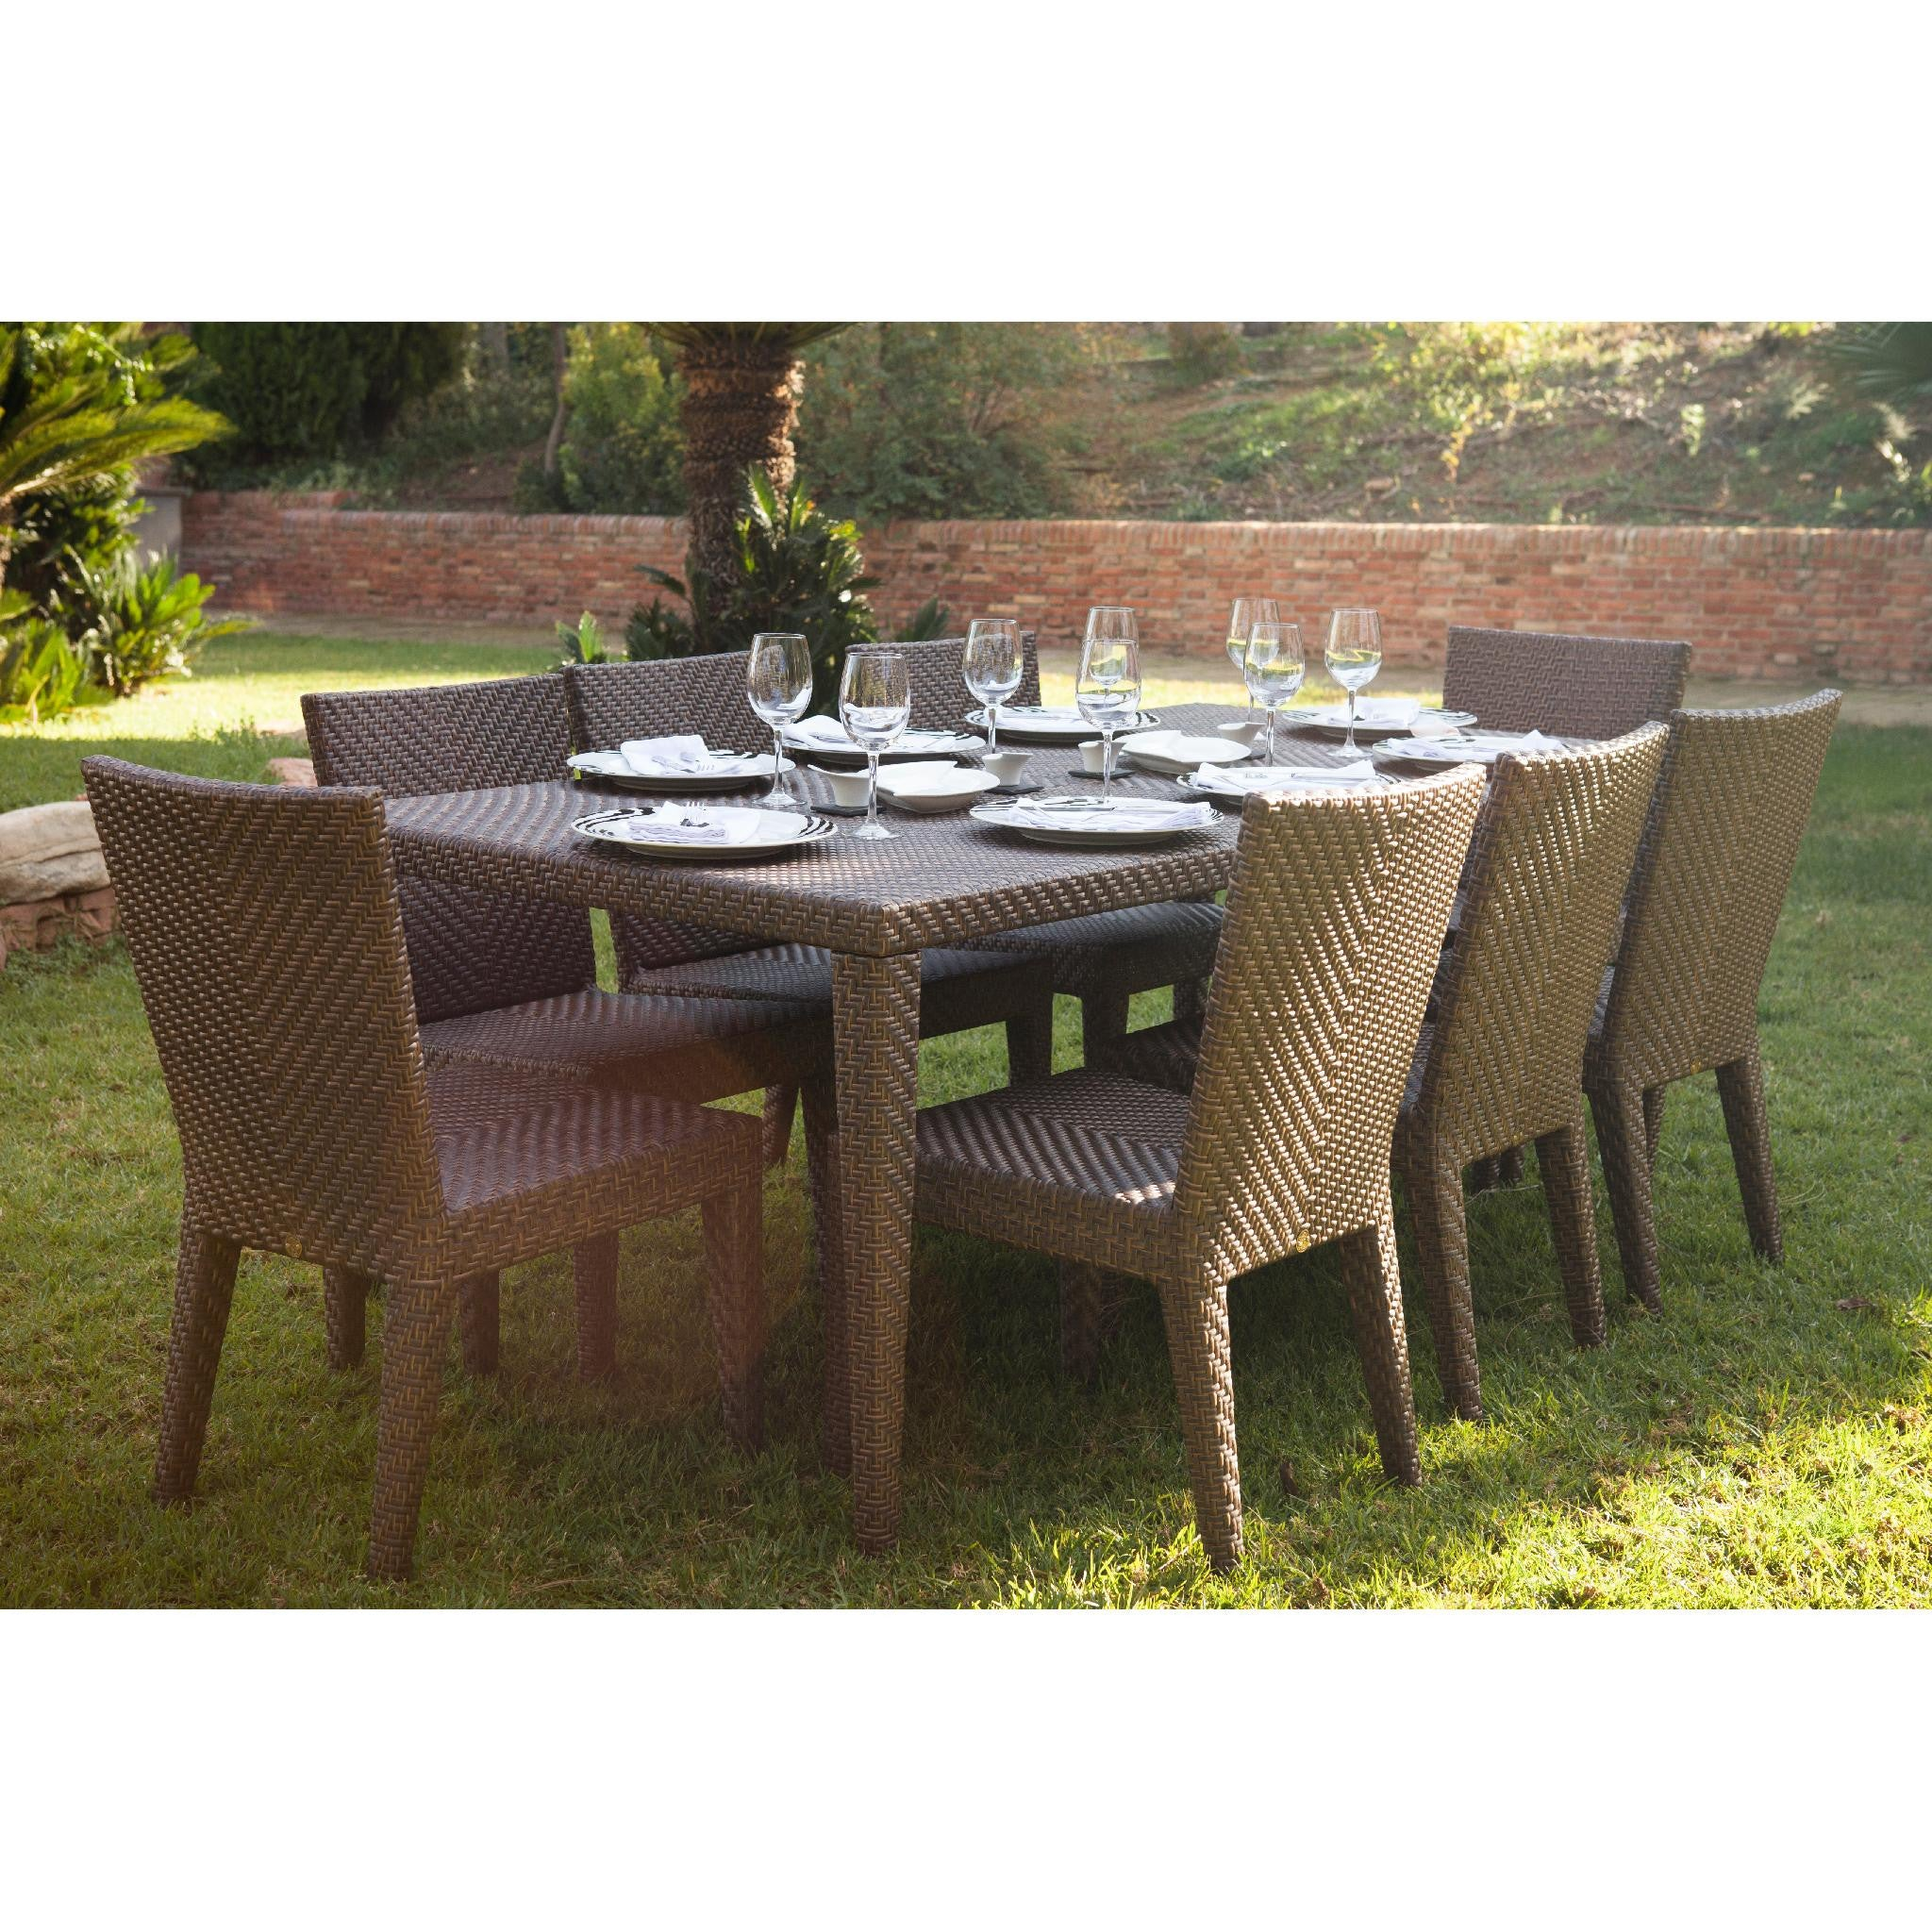 Beau Hospitality Rattan Soho 9 Piece Dining Set With 2 Arm Chairs 9 PC SET 903